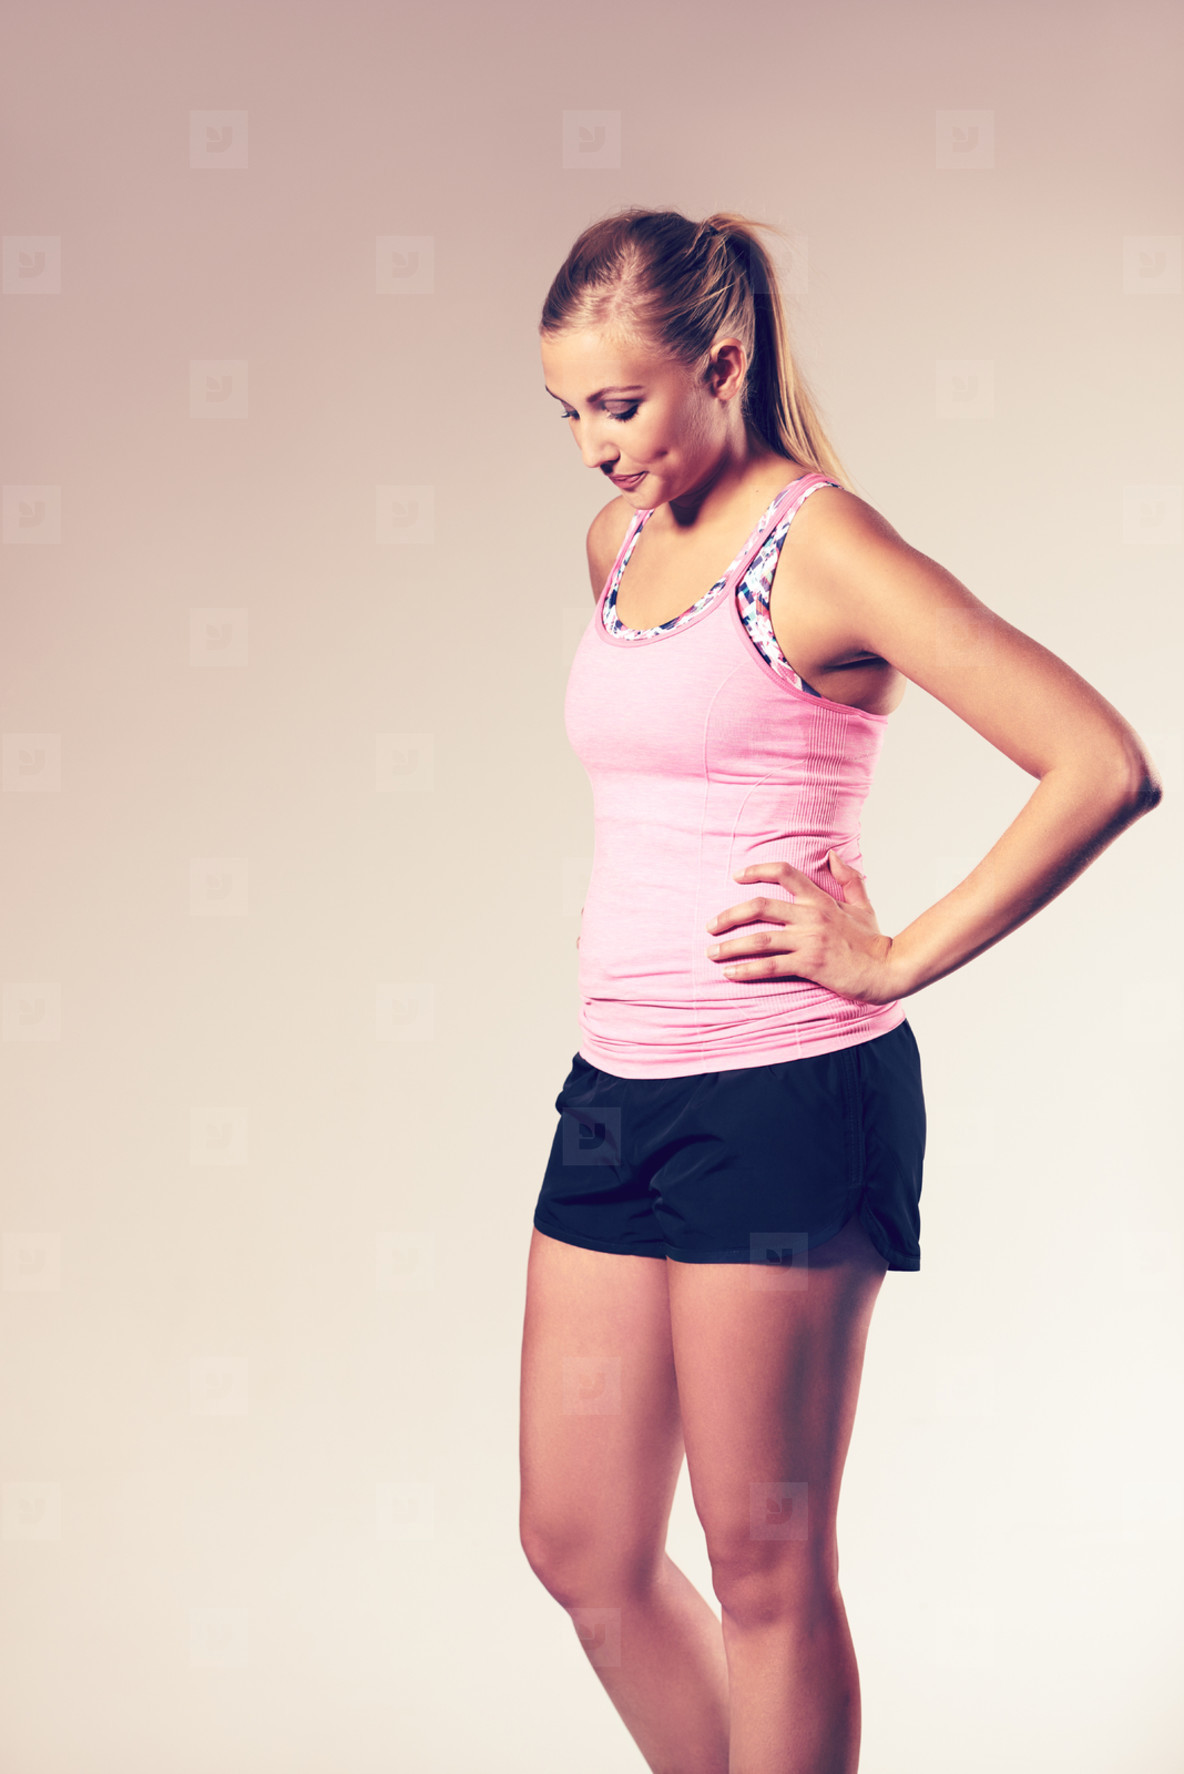 Woman posing in workout clothes looking down